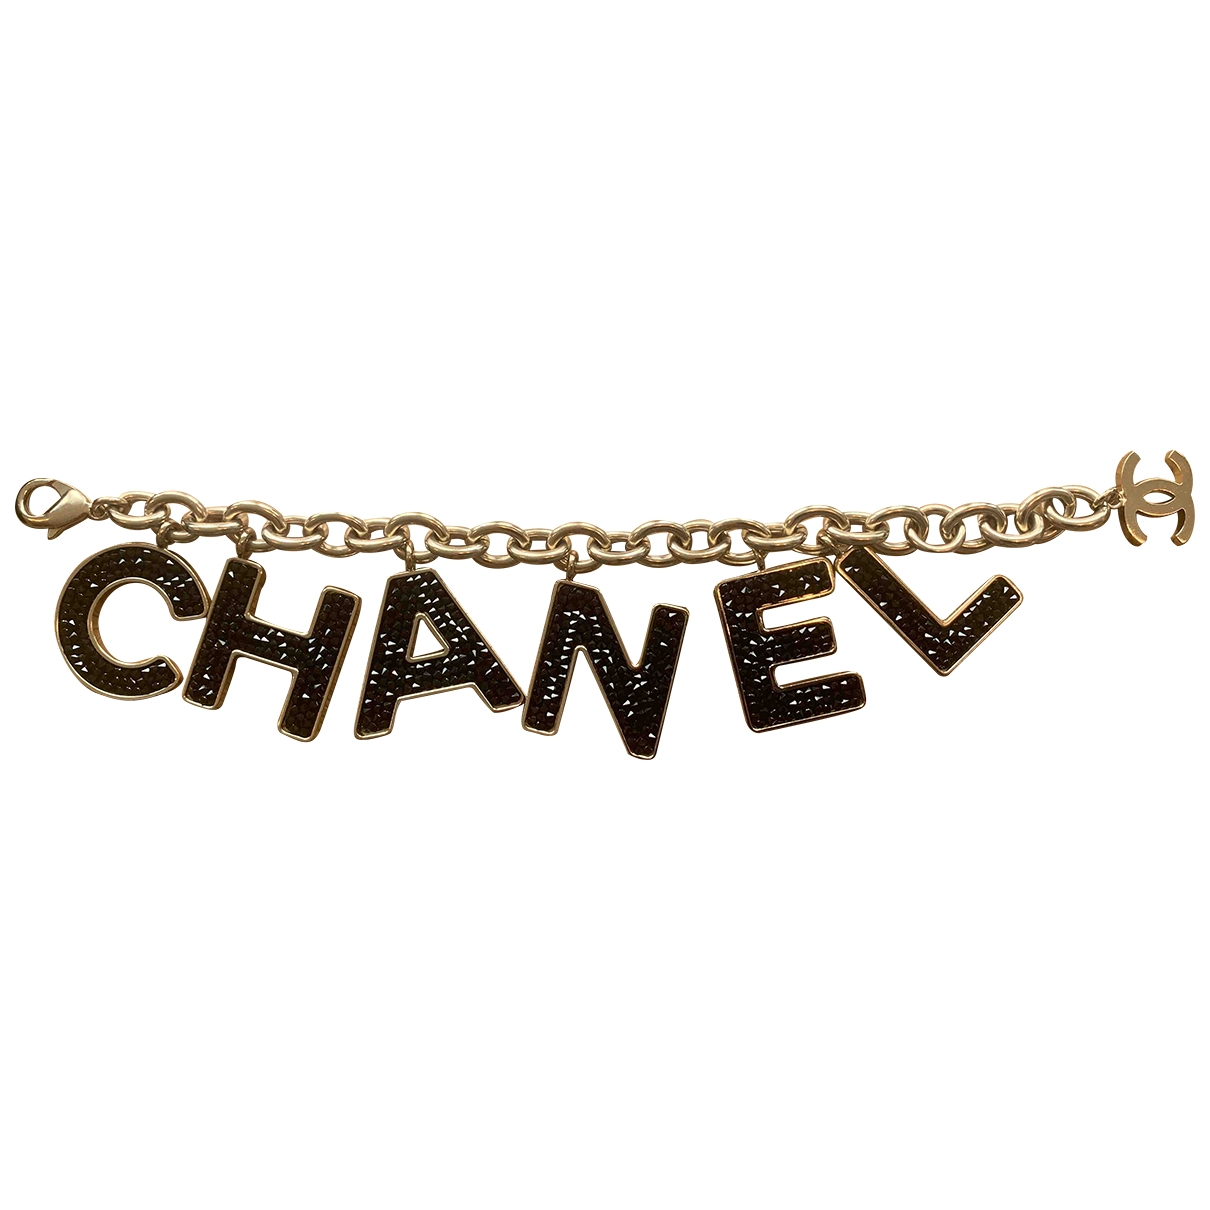 Chanel CHANEL Armband in Stahl